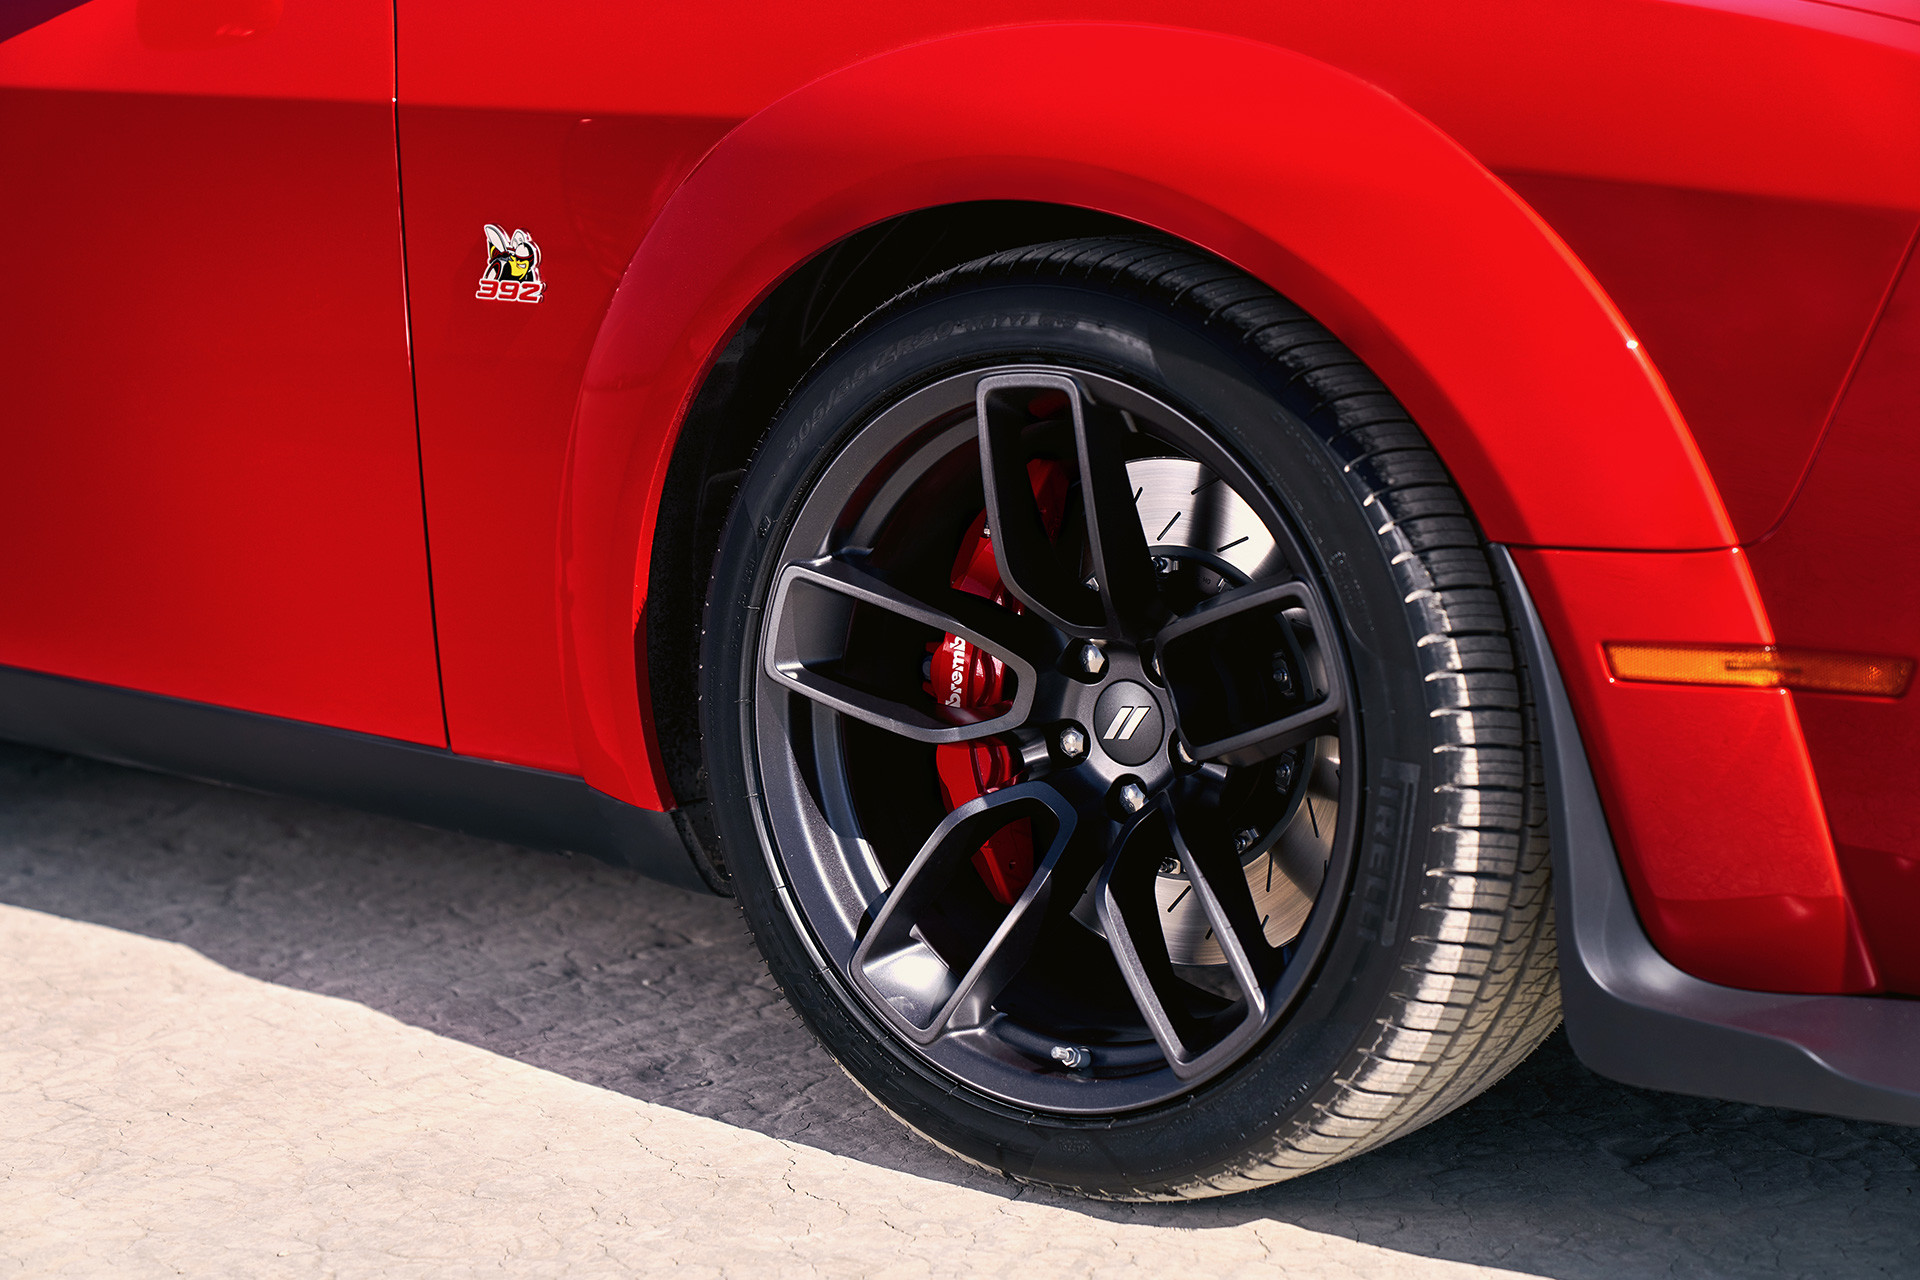 2019 Dodge Challenger in red showing 20-inch aluminum wheels